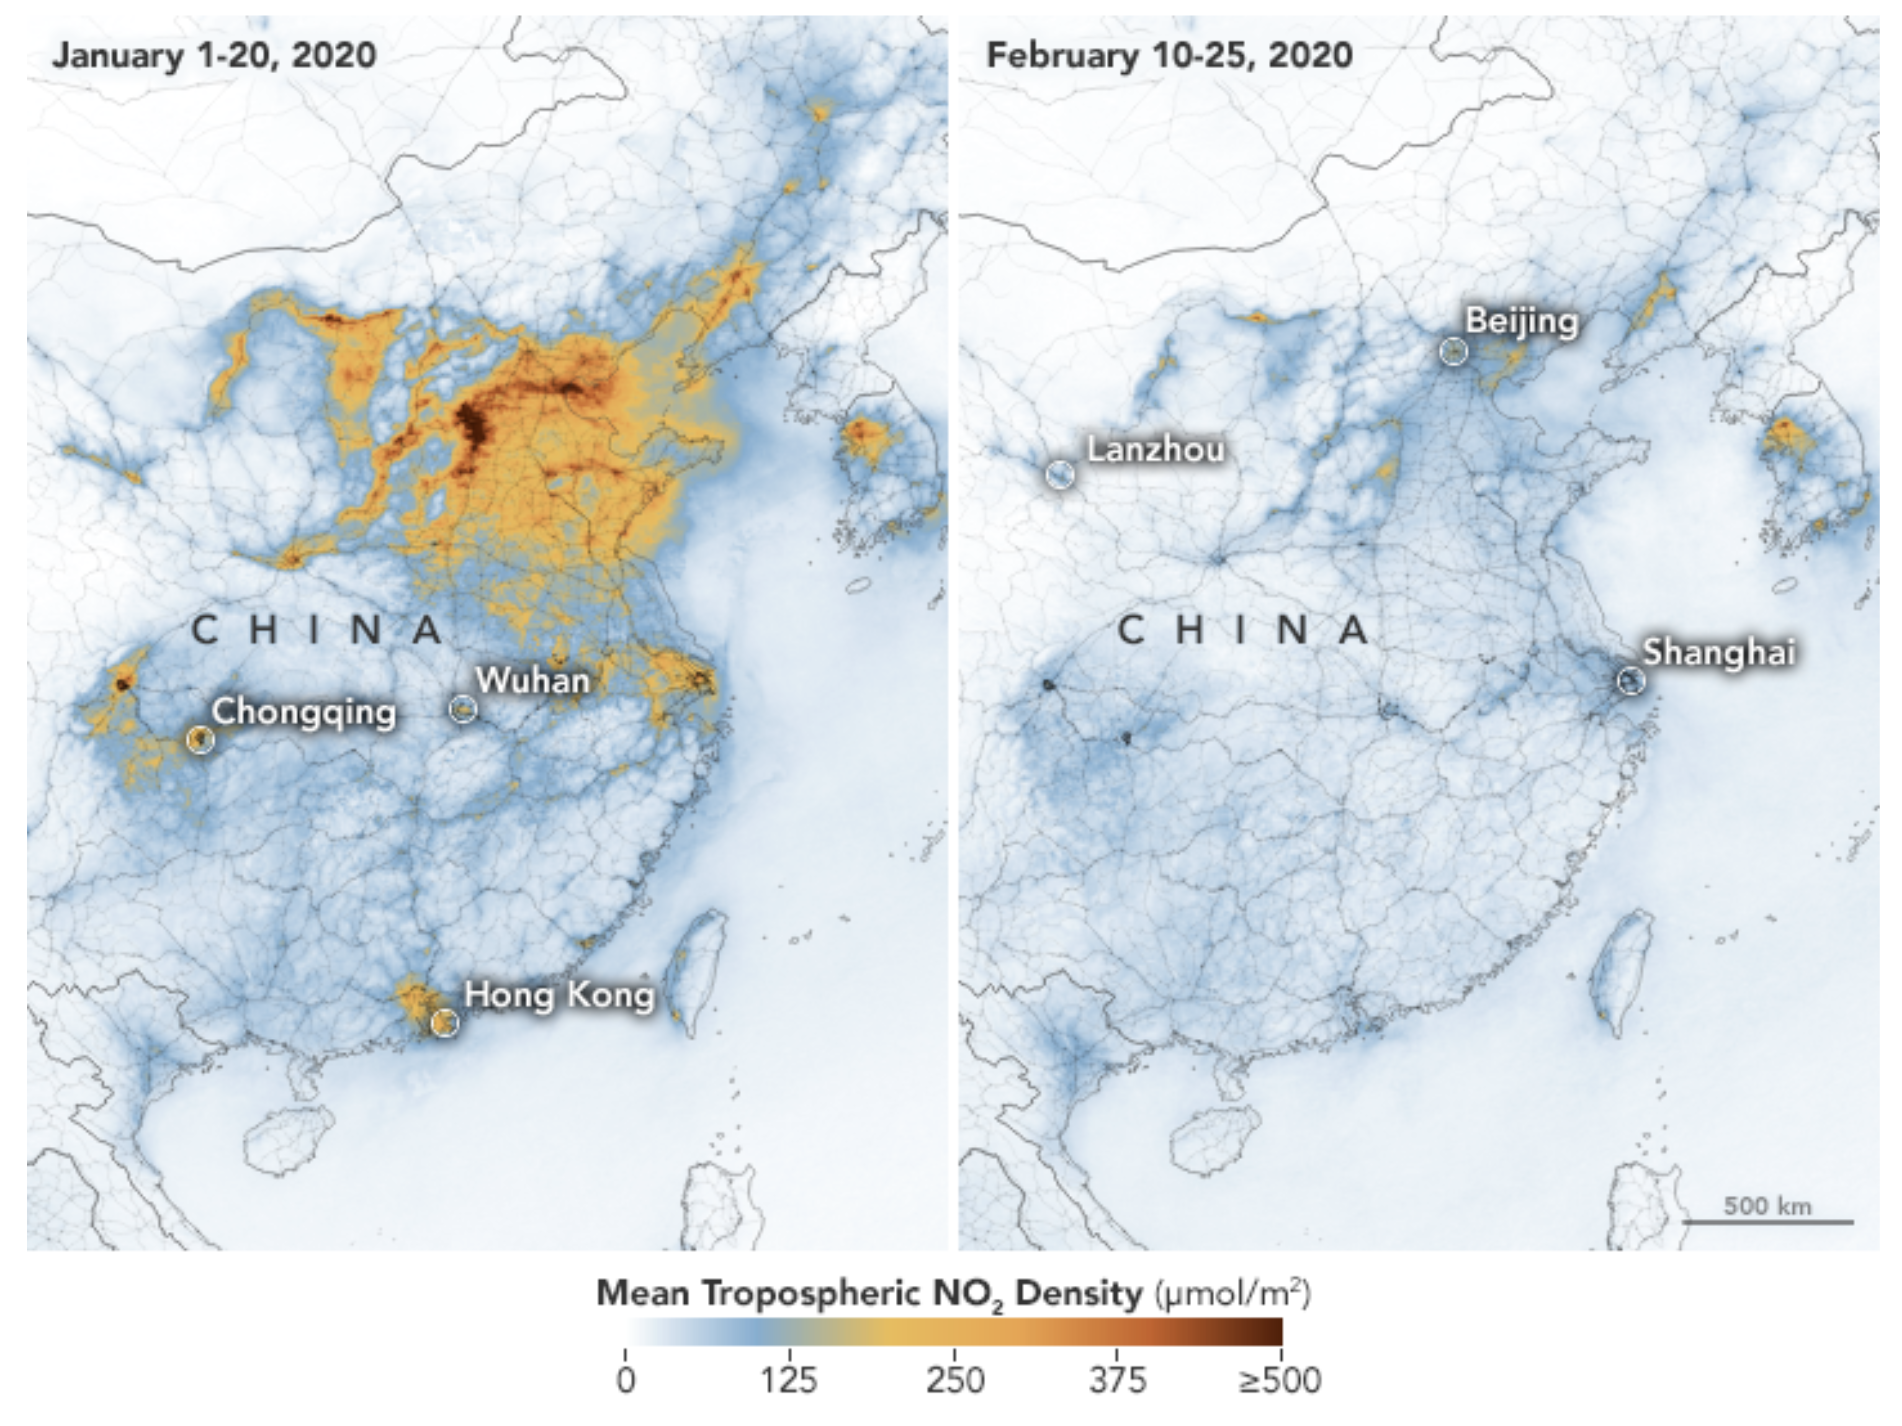 Satellites detected significant decreases in nitrogen dioxide over China during the lockdown